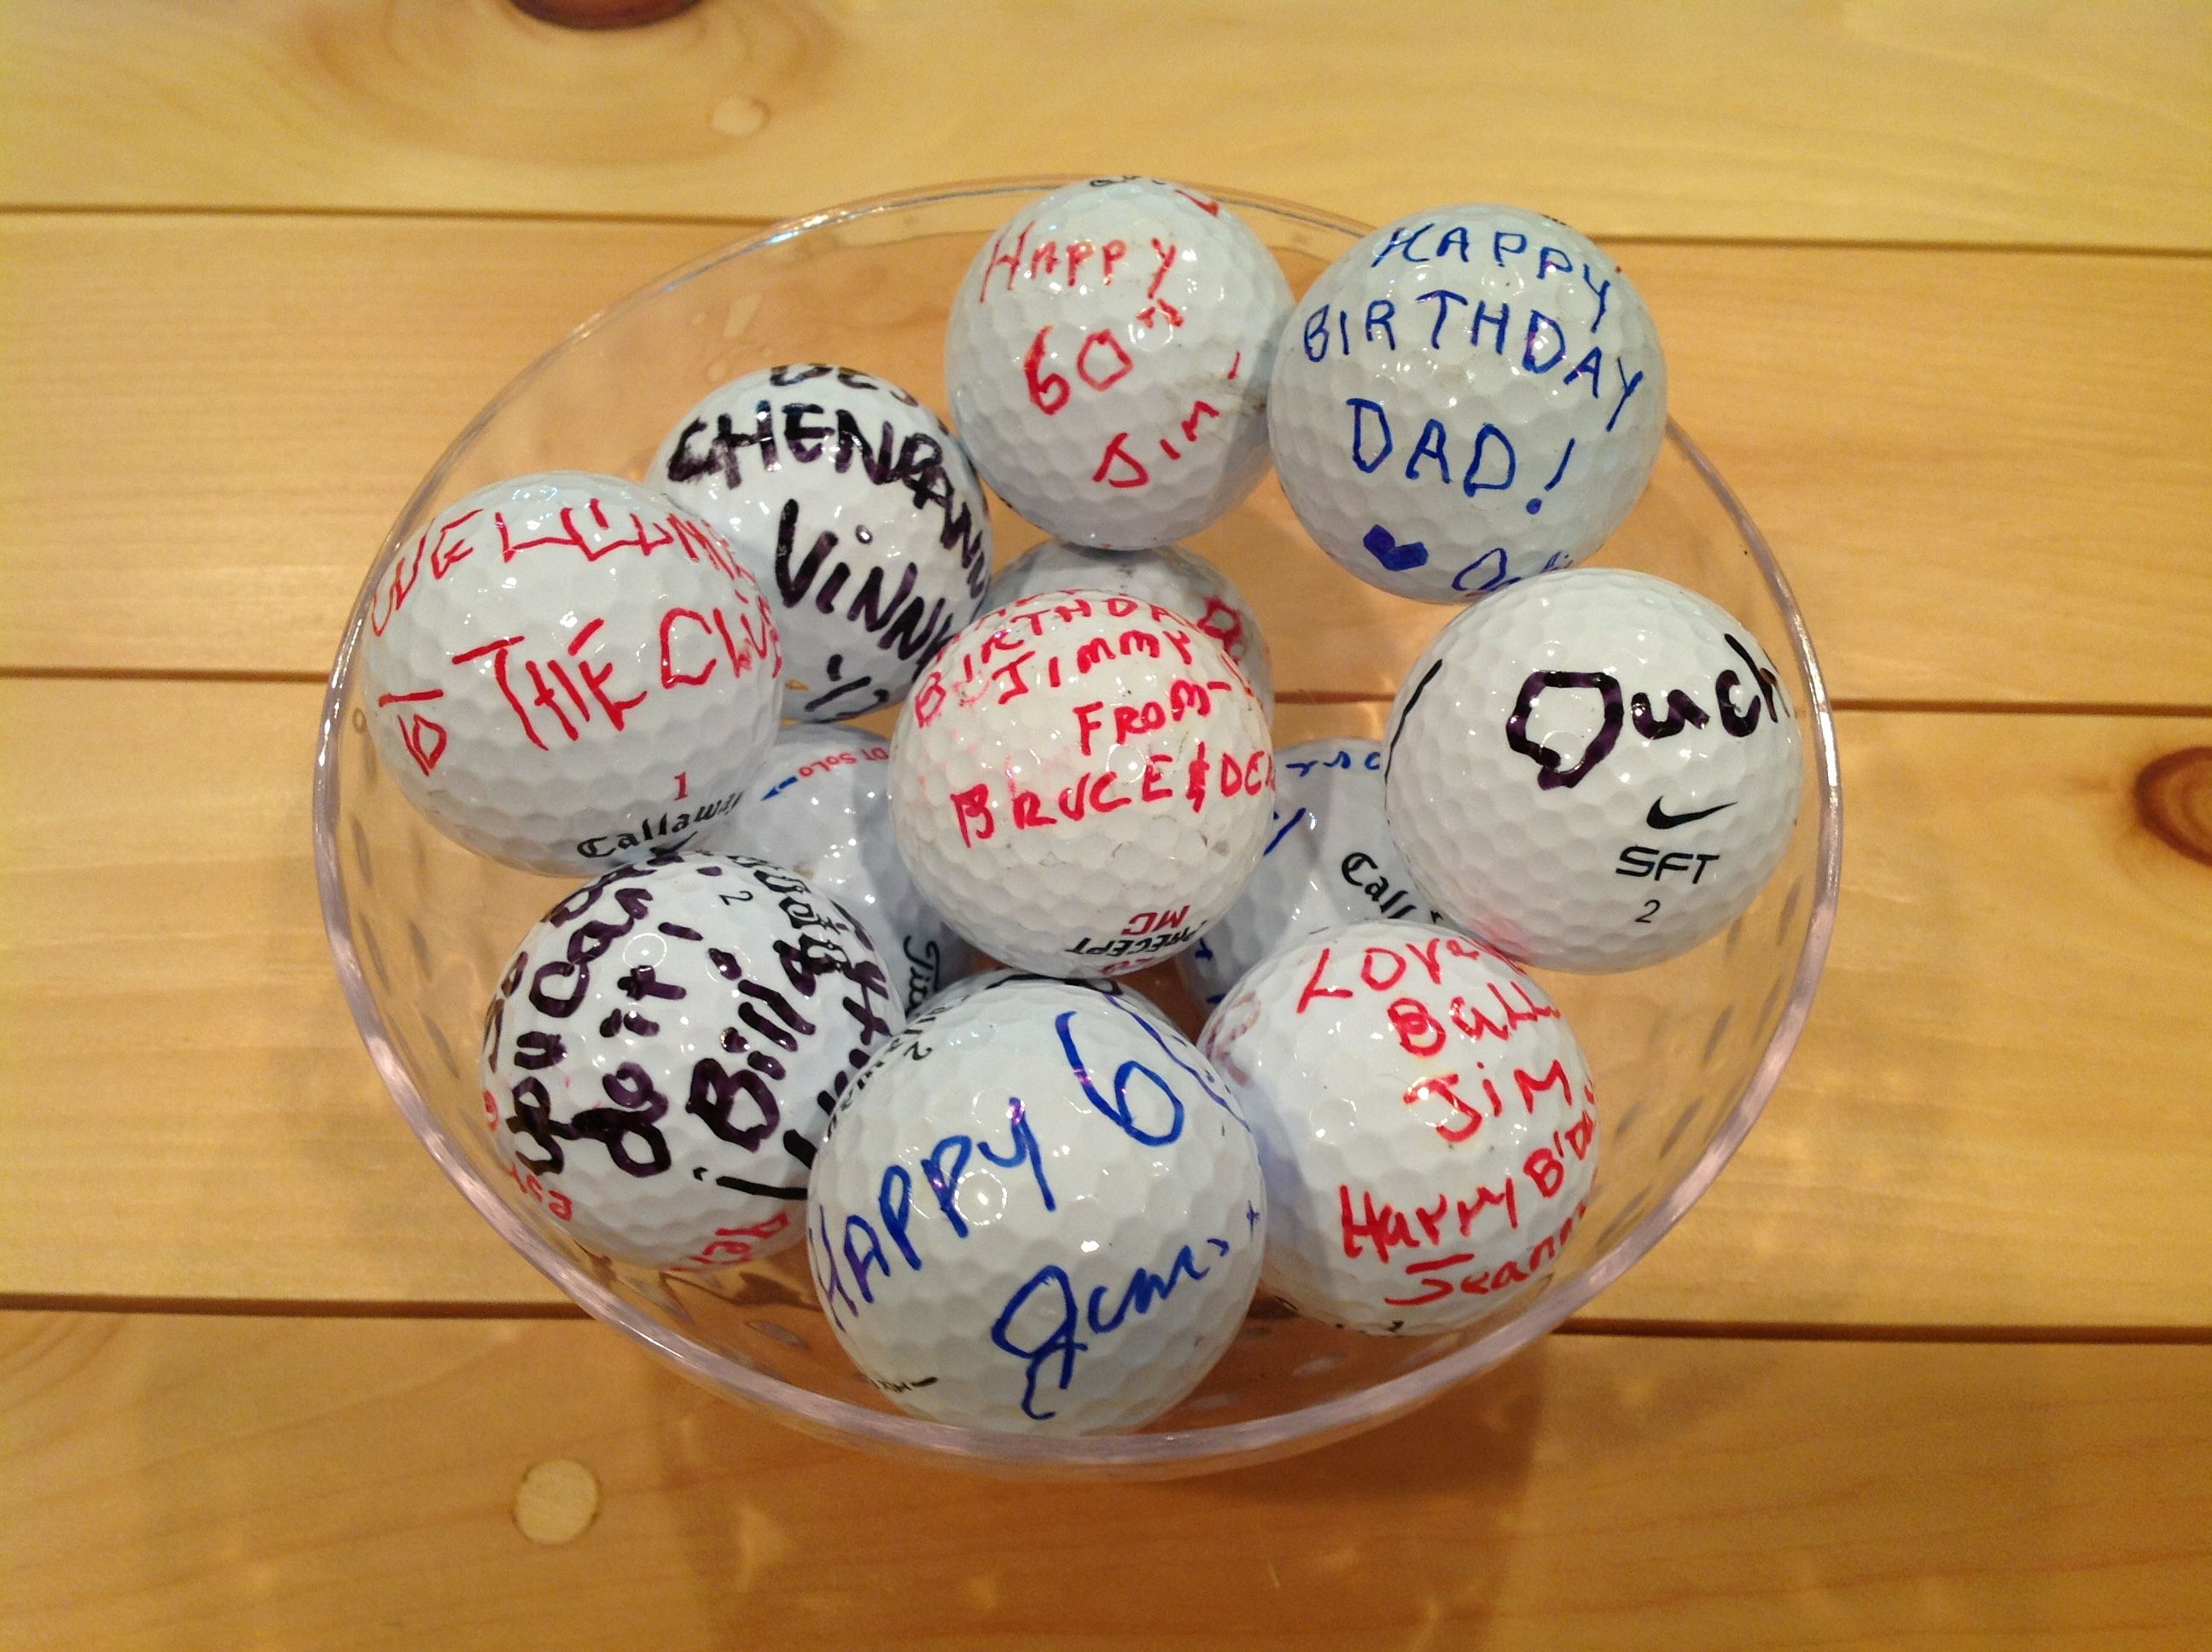 Guests left birthday messages for Jim on golf balls. | Jim ...